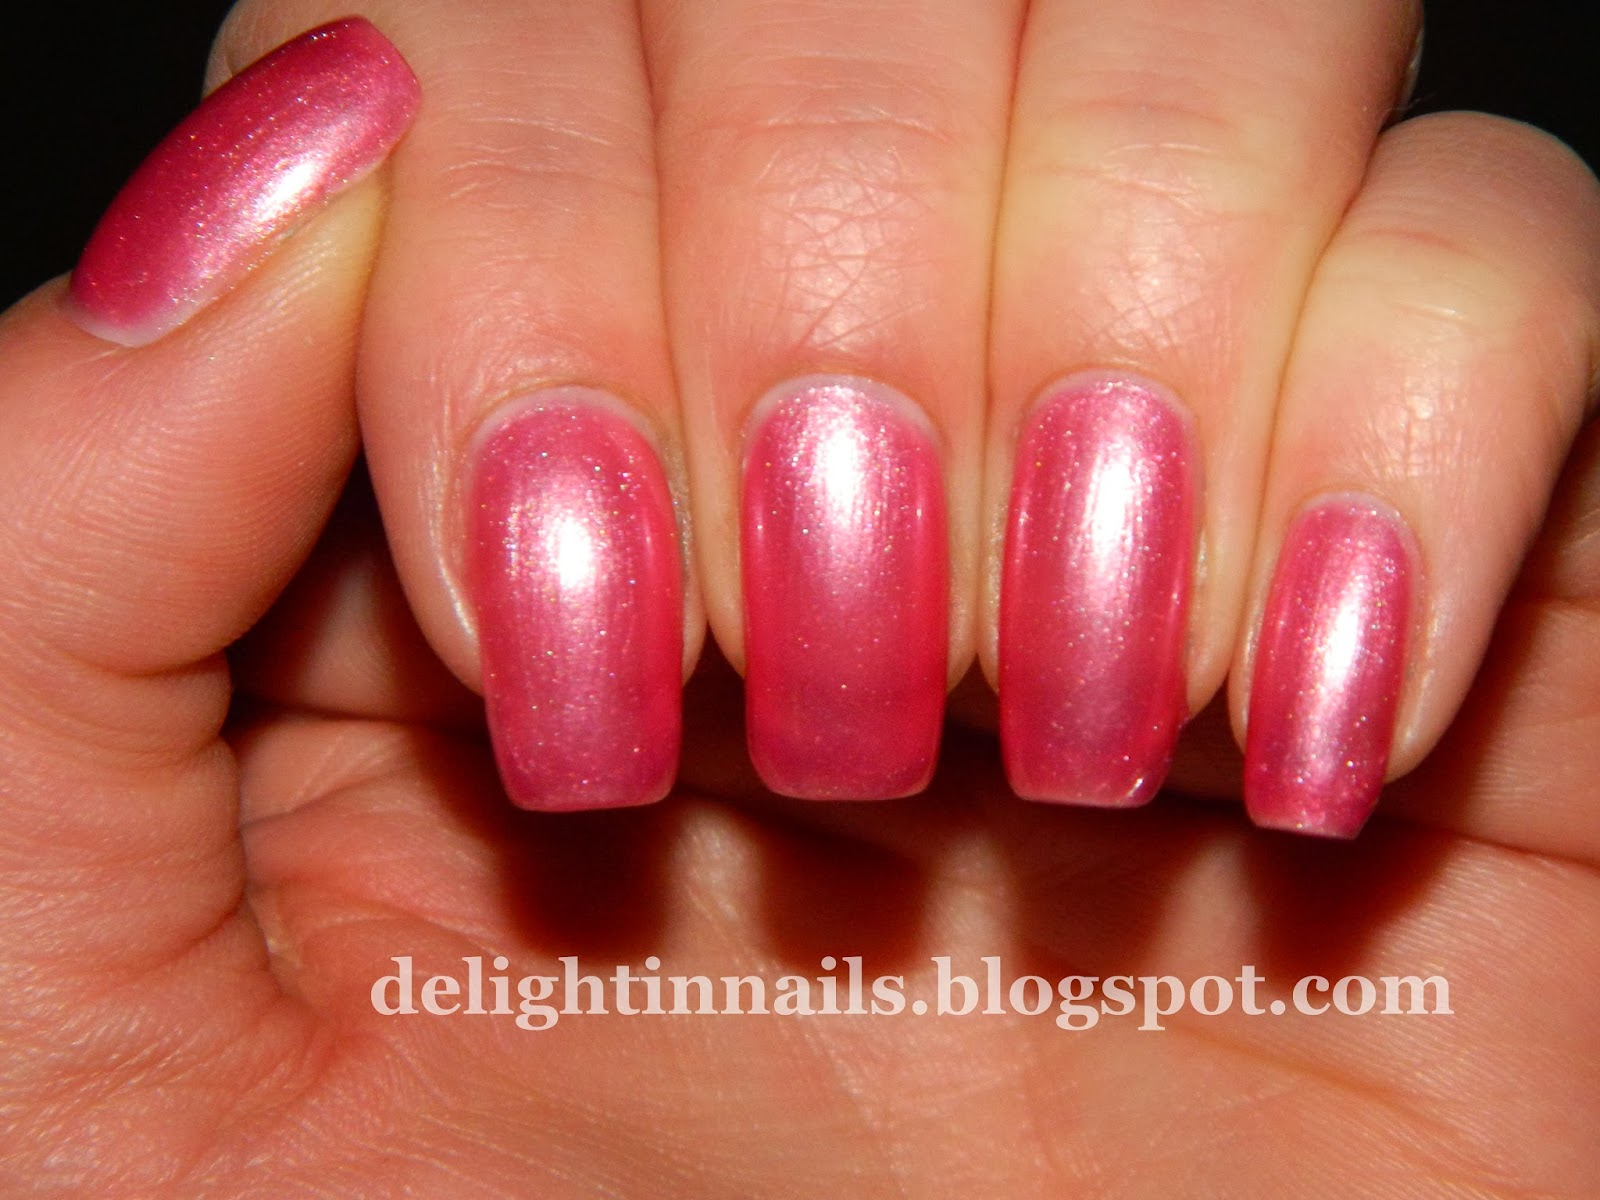 Delight In Nails: January 2014